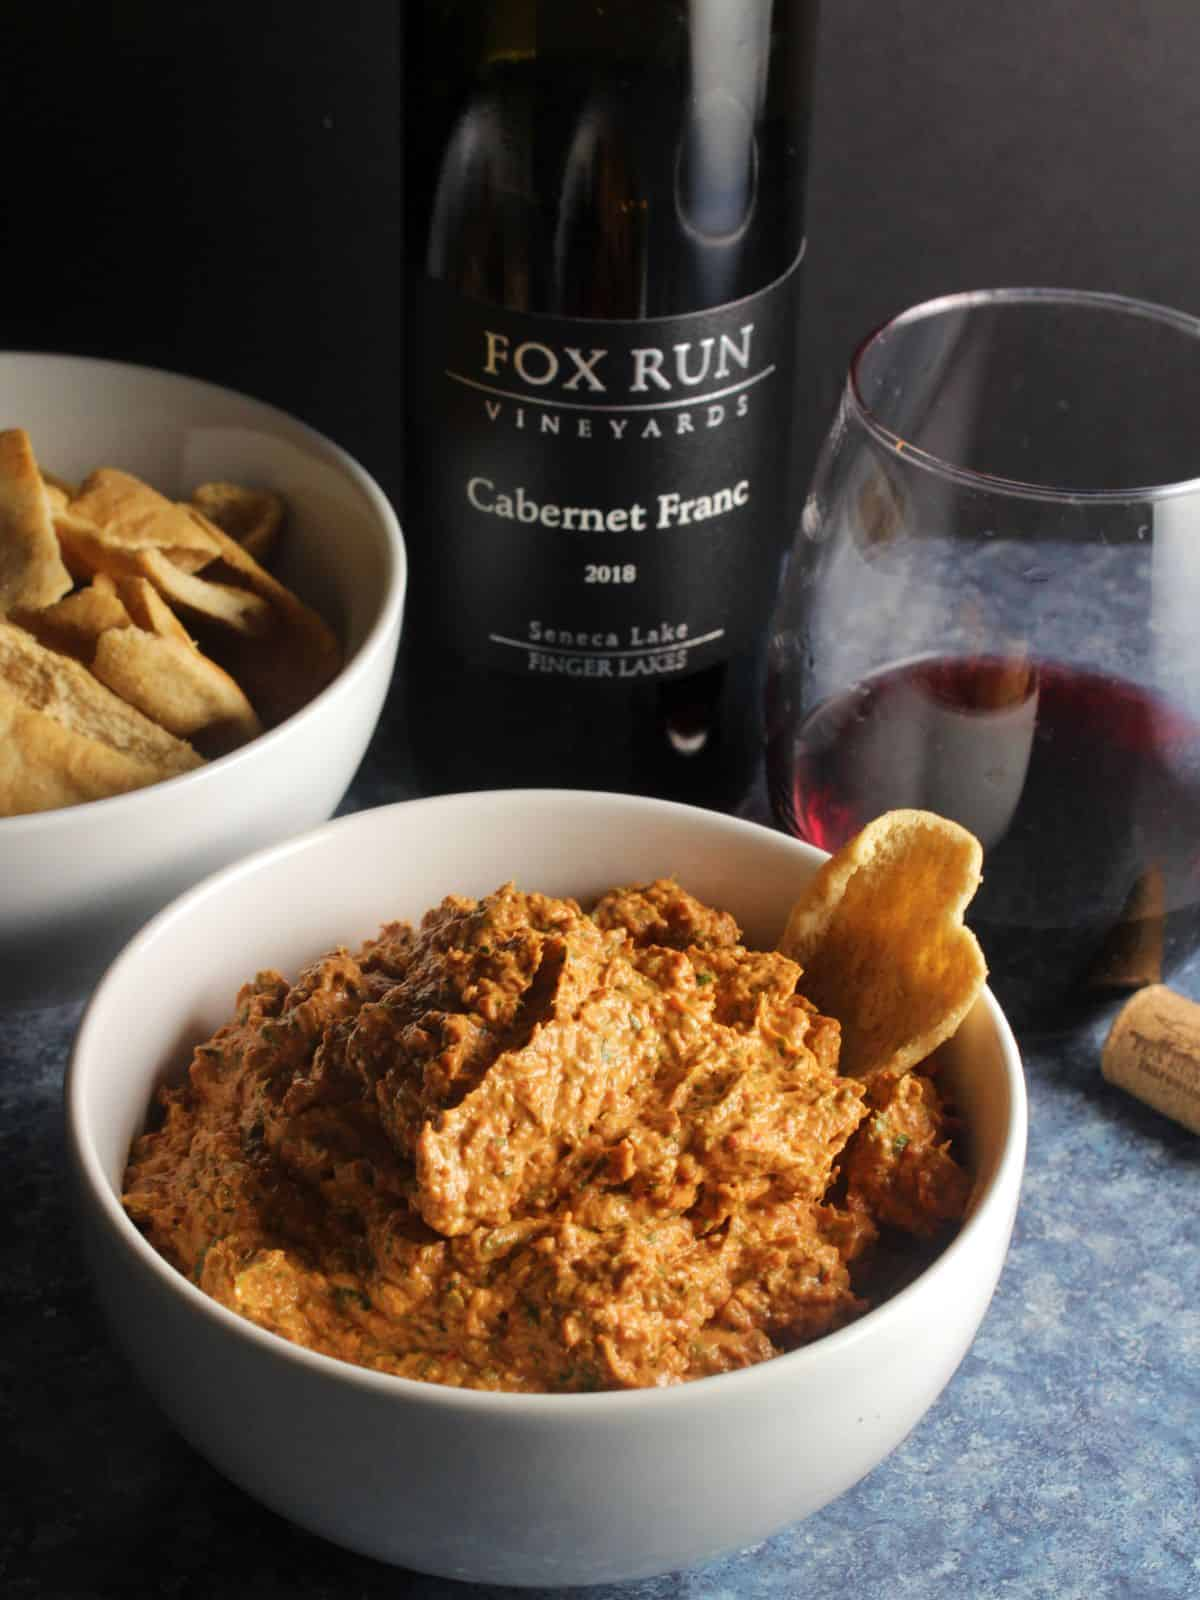 roasted red pepper dip served with red wine and pita chips.